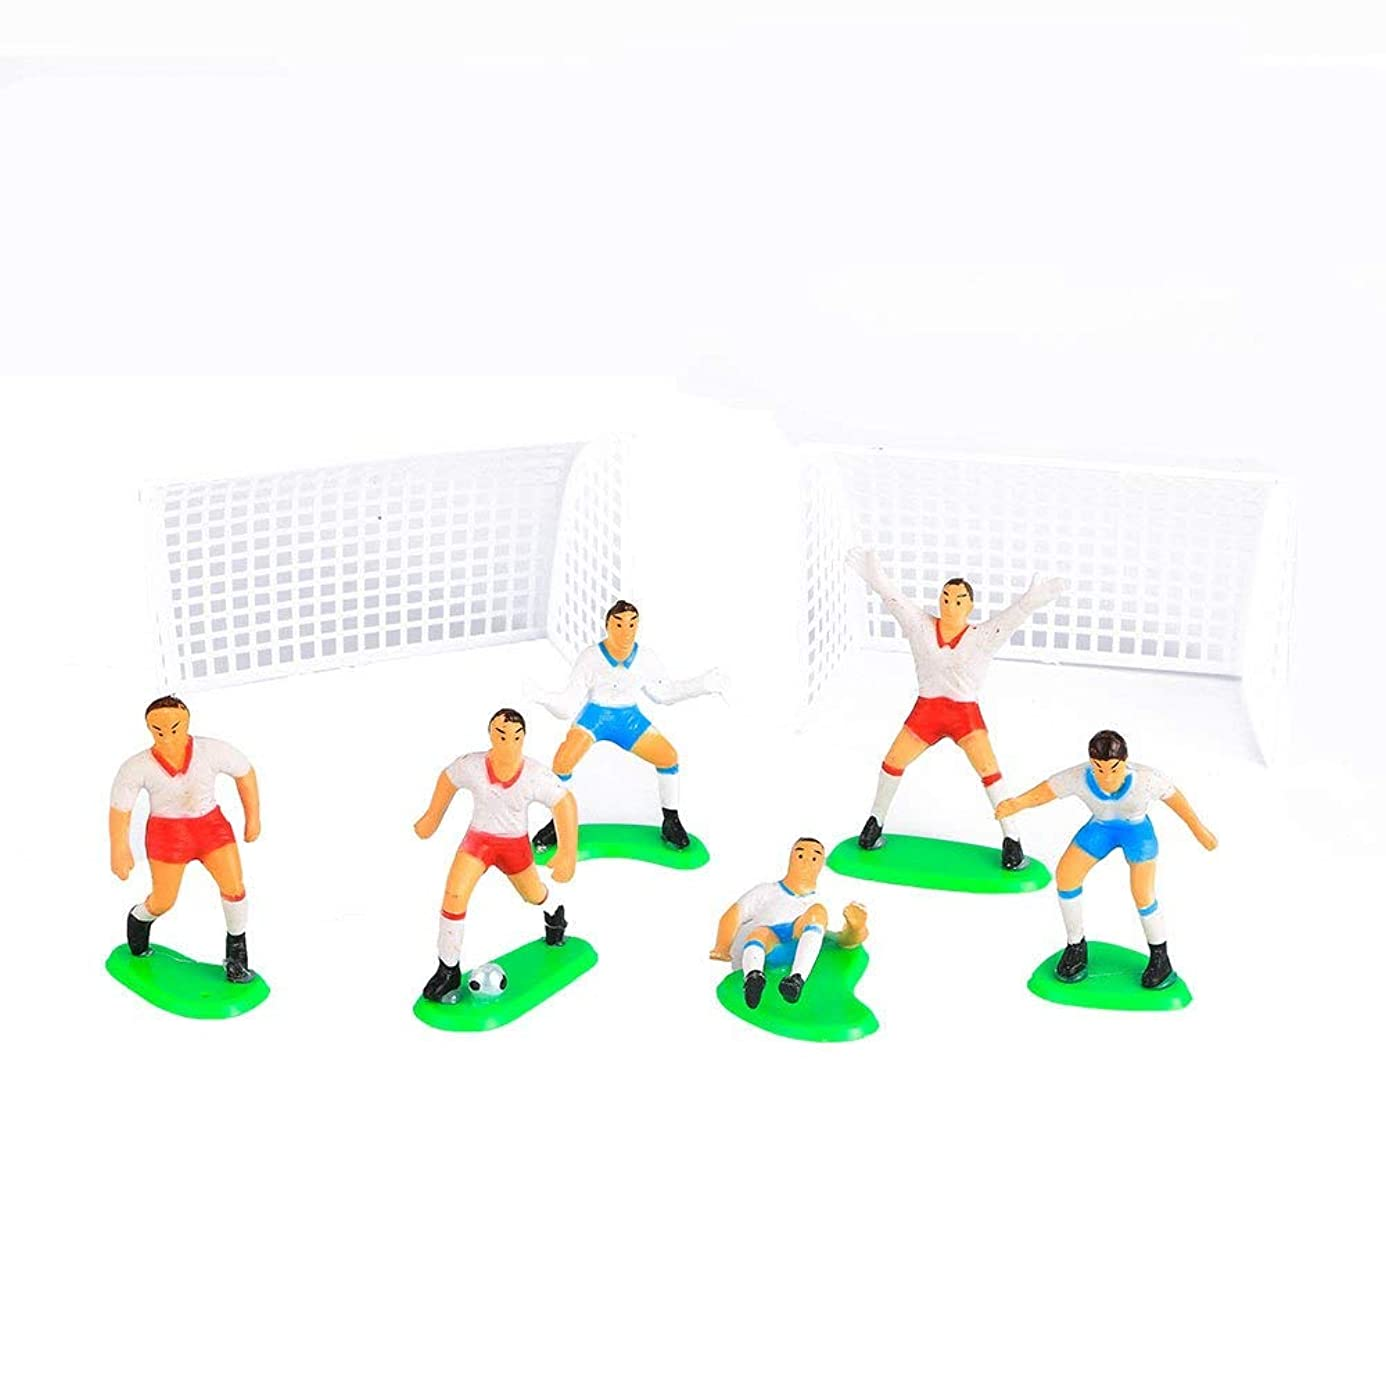 Mould - 8 Pcs Soccer Player Birthday Cake Decoration Football Team Scene - Topper 5 Cake Doll Soccer Cake Soccer Party Goal Decor Candle 20th Spiderman Party Cake Soccer Gold Mold Mould Ring